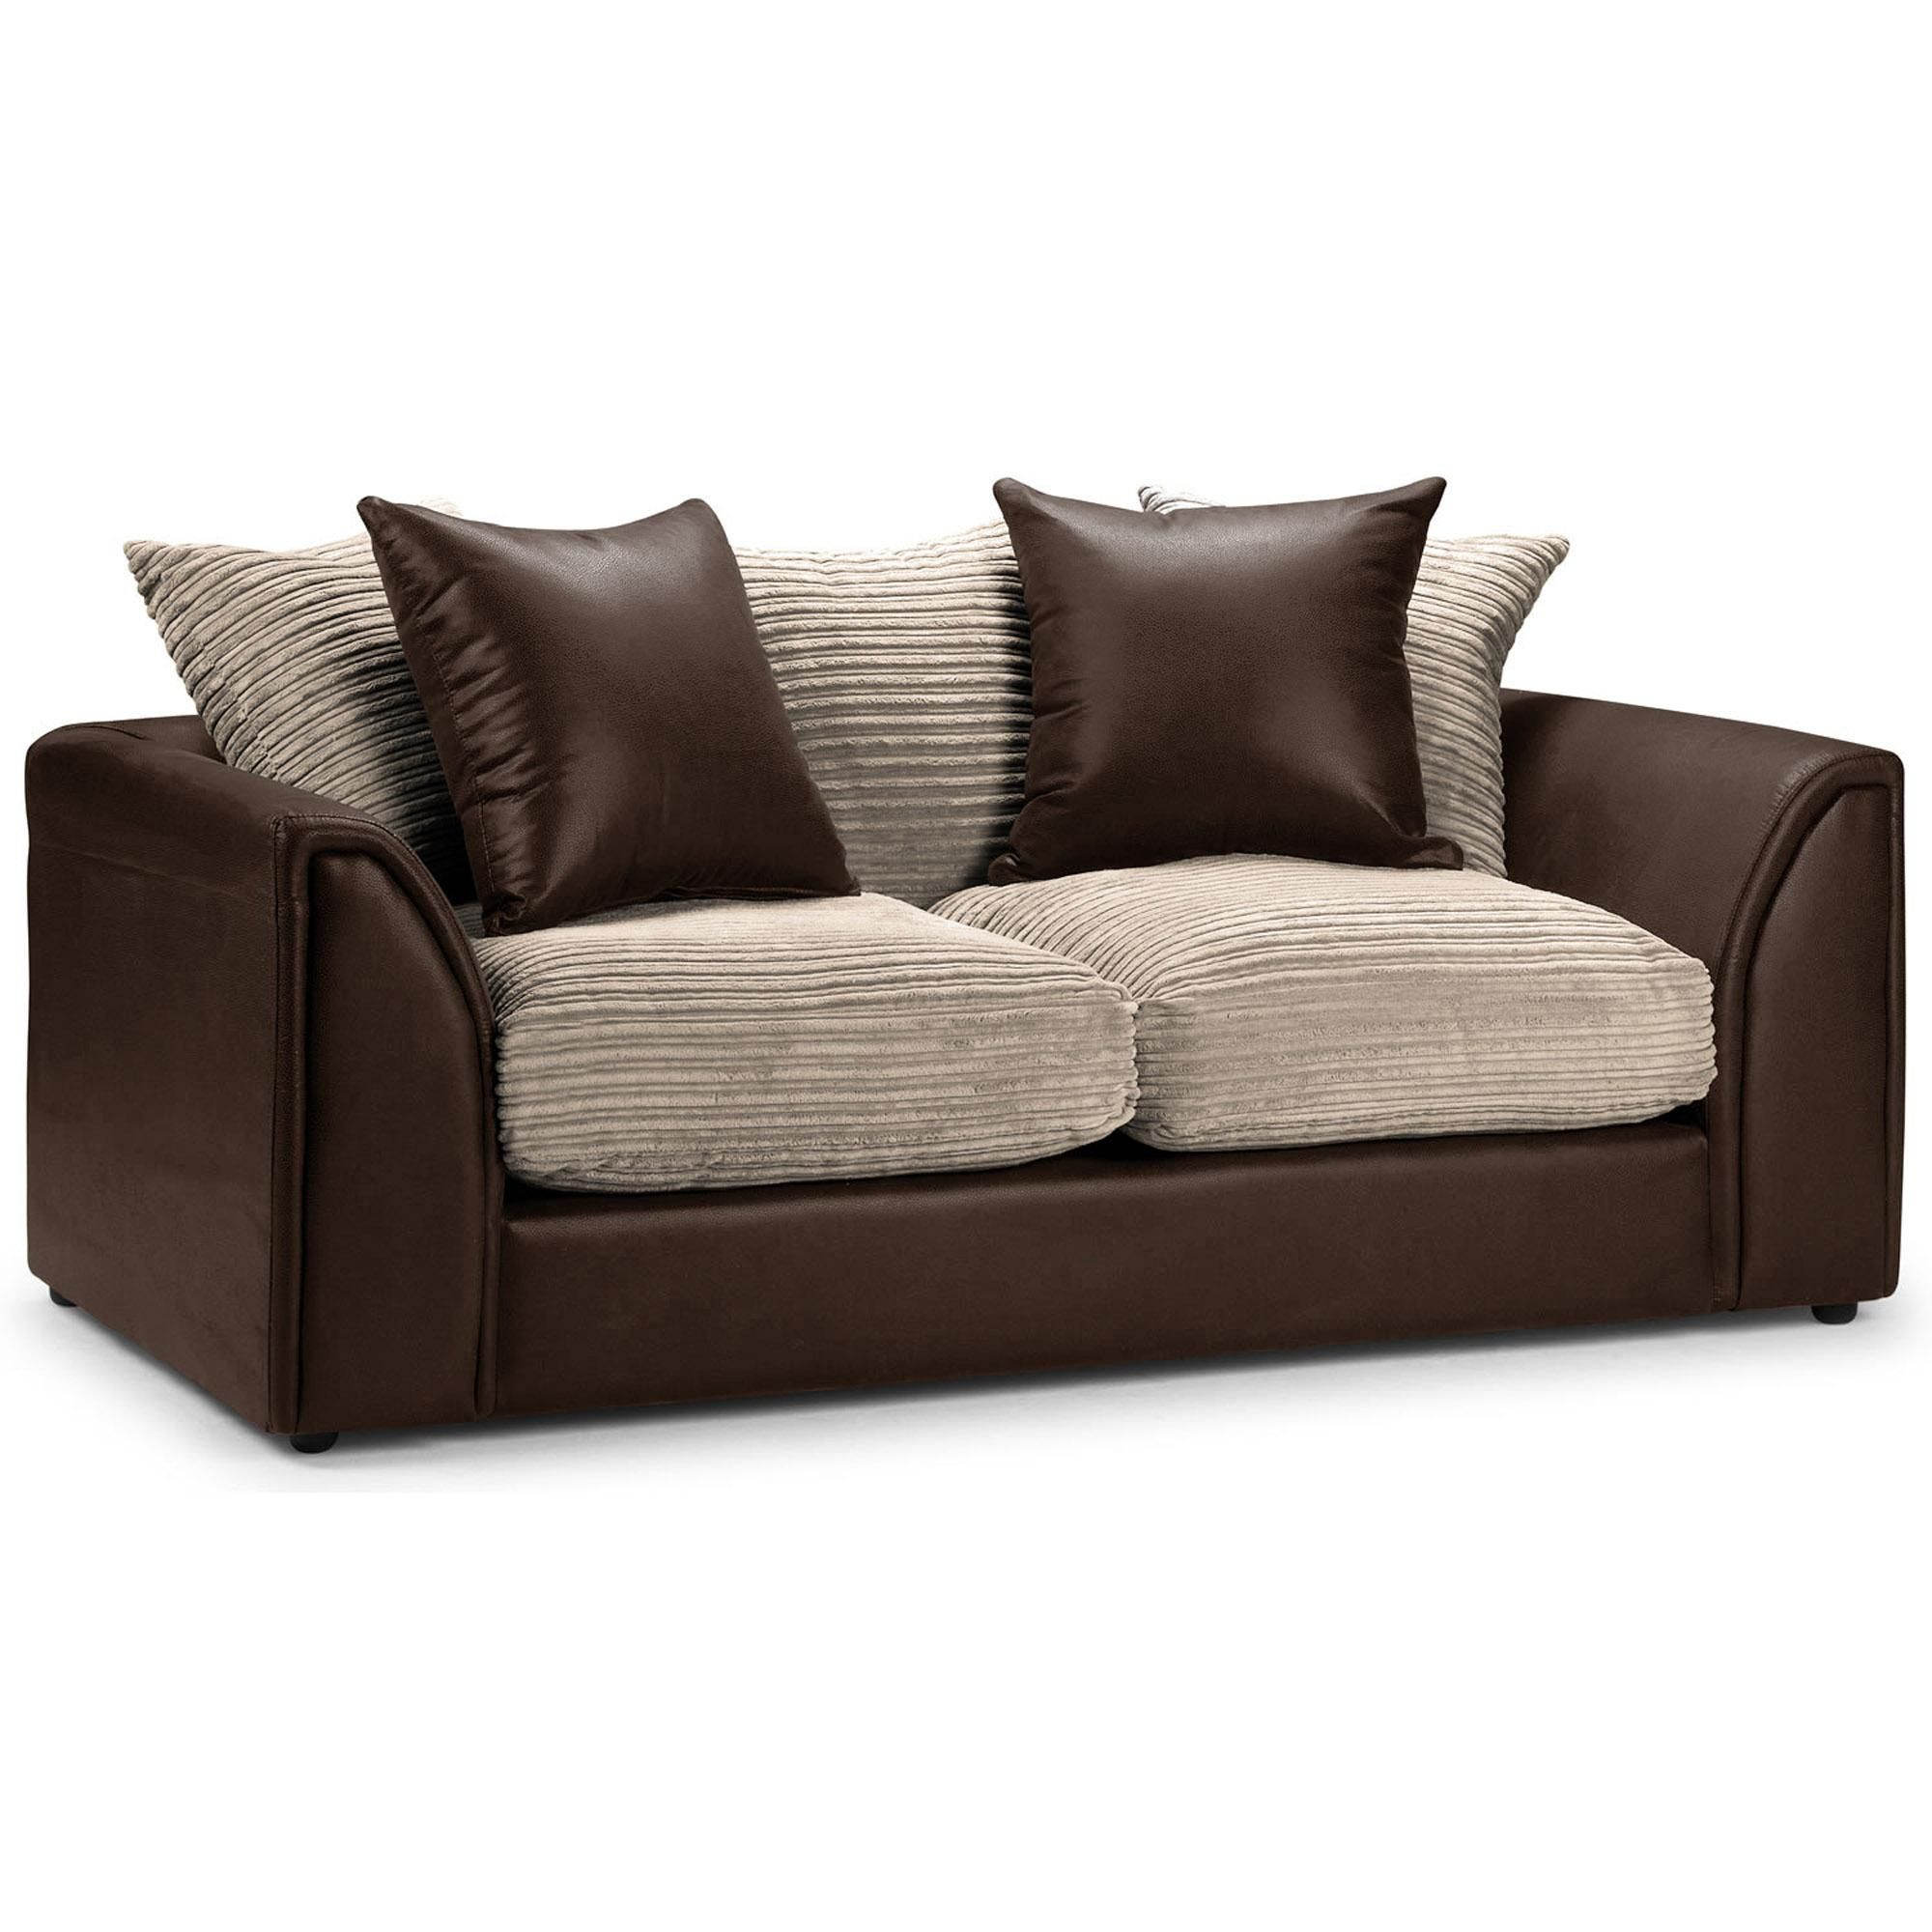 - Byron 3 Seater Sofa In 2020 Leather Sofa Bed, Cheap Sofa Beds